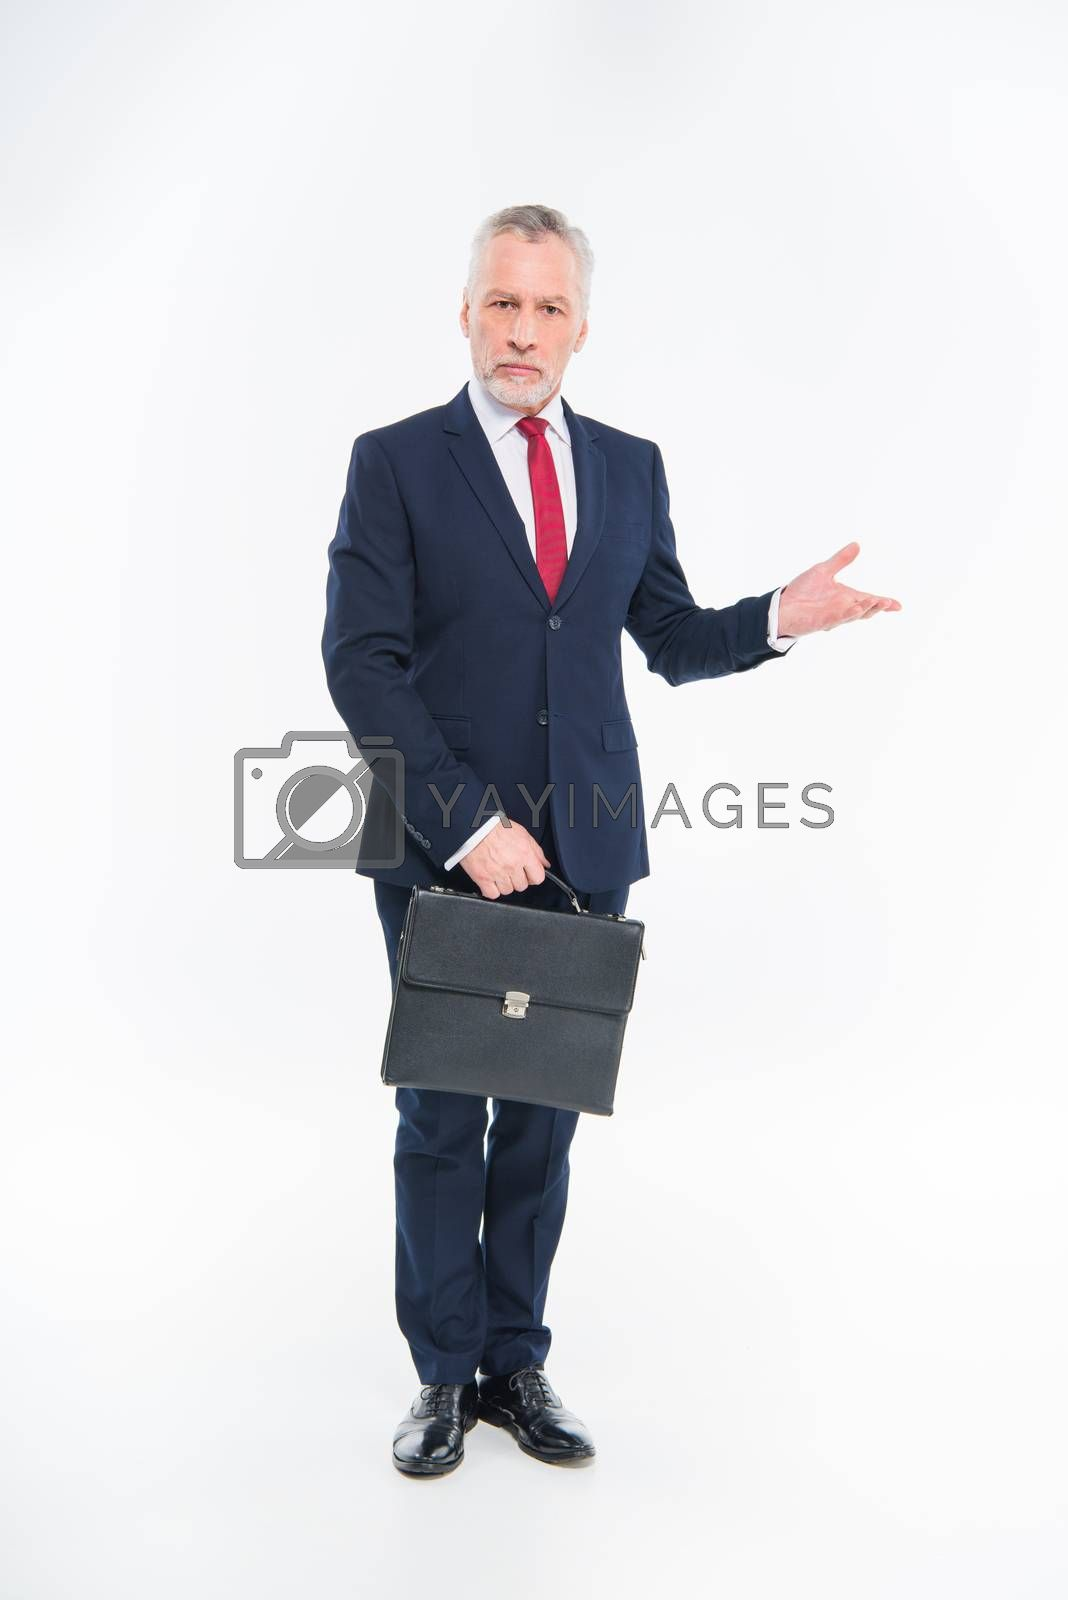 Mature businessman holding briefcase and gesturing with hand